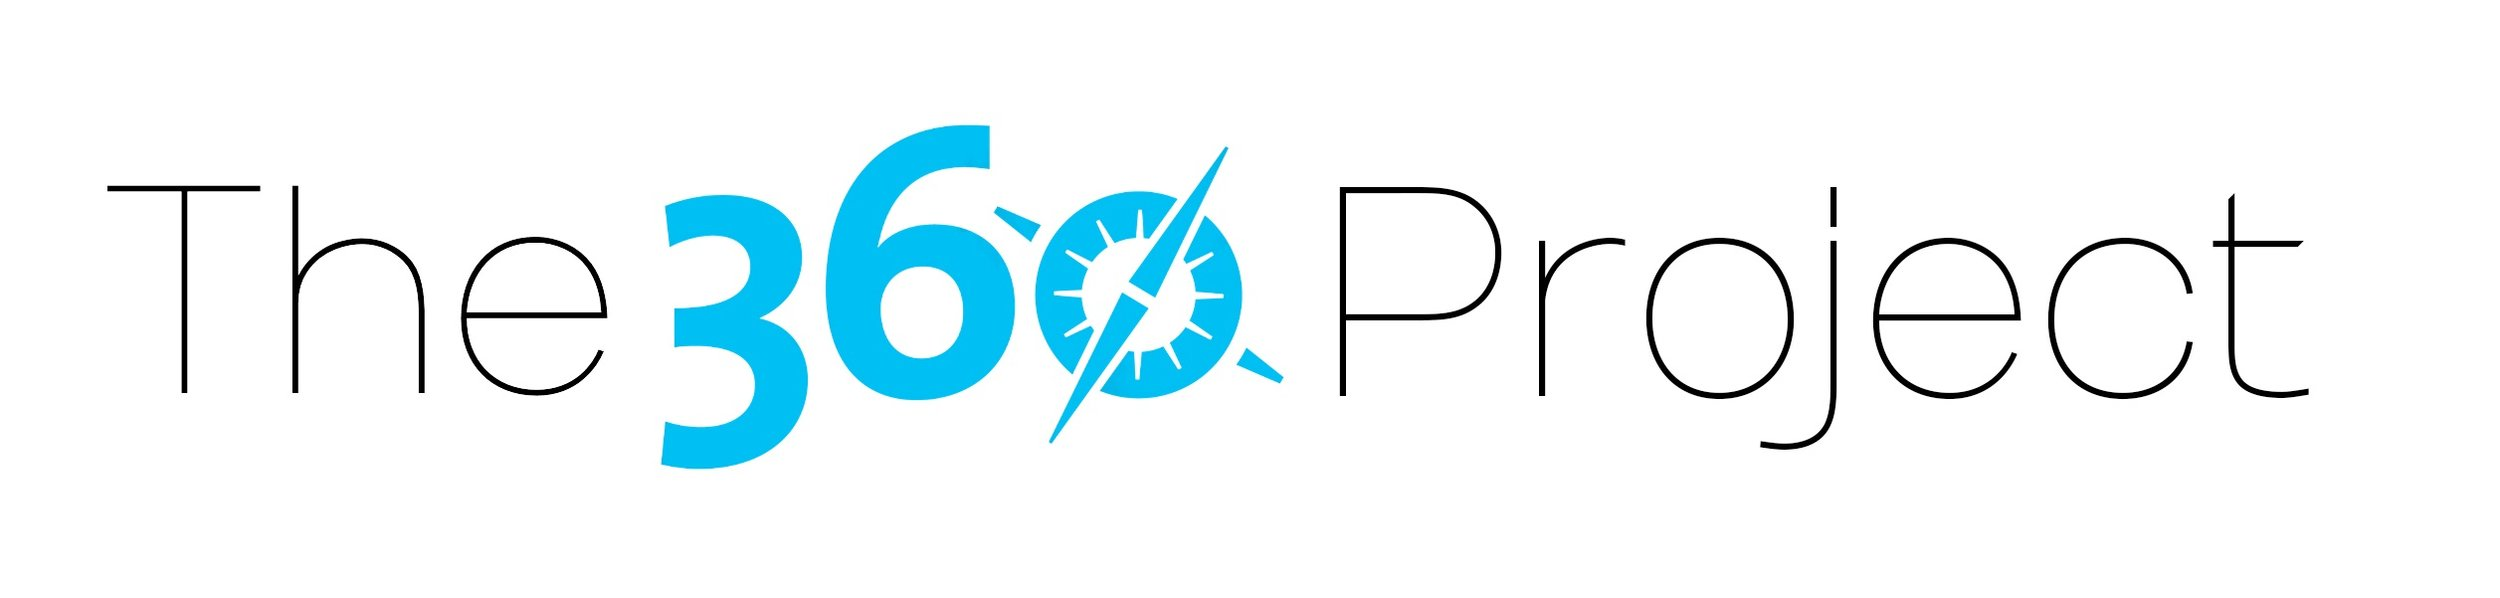 The-360-Project-banner size.jpg